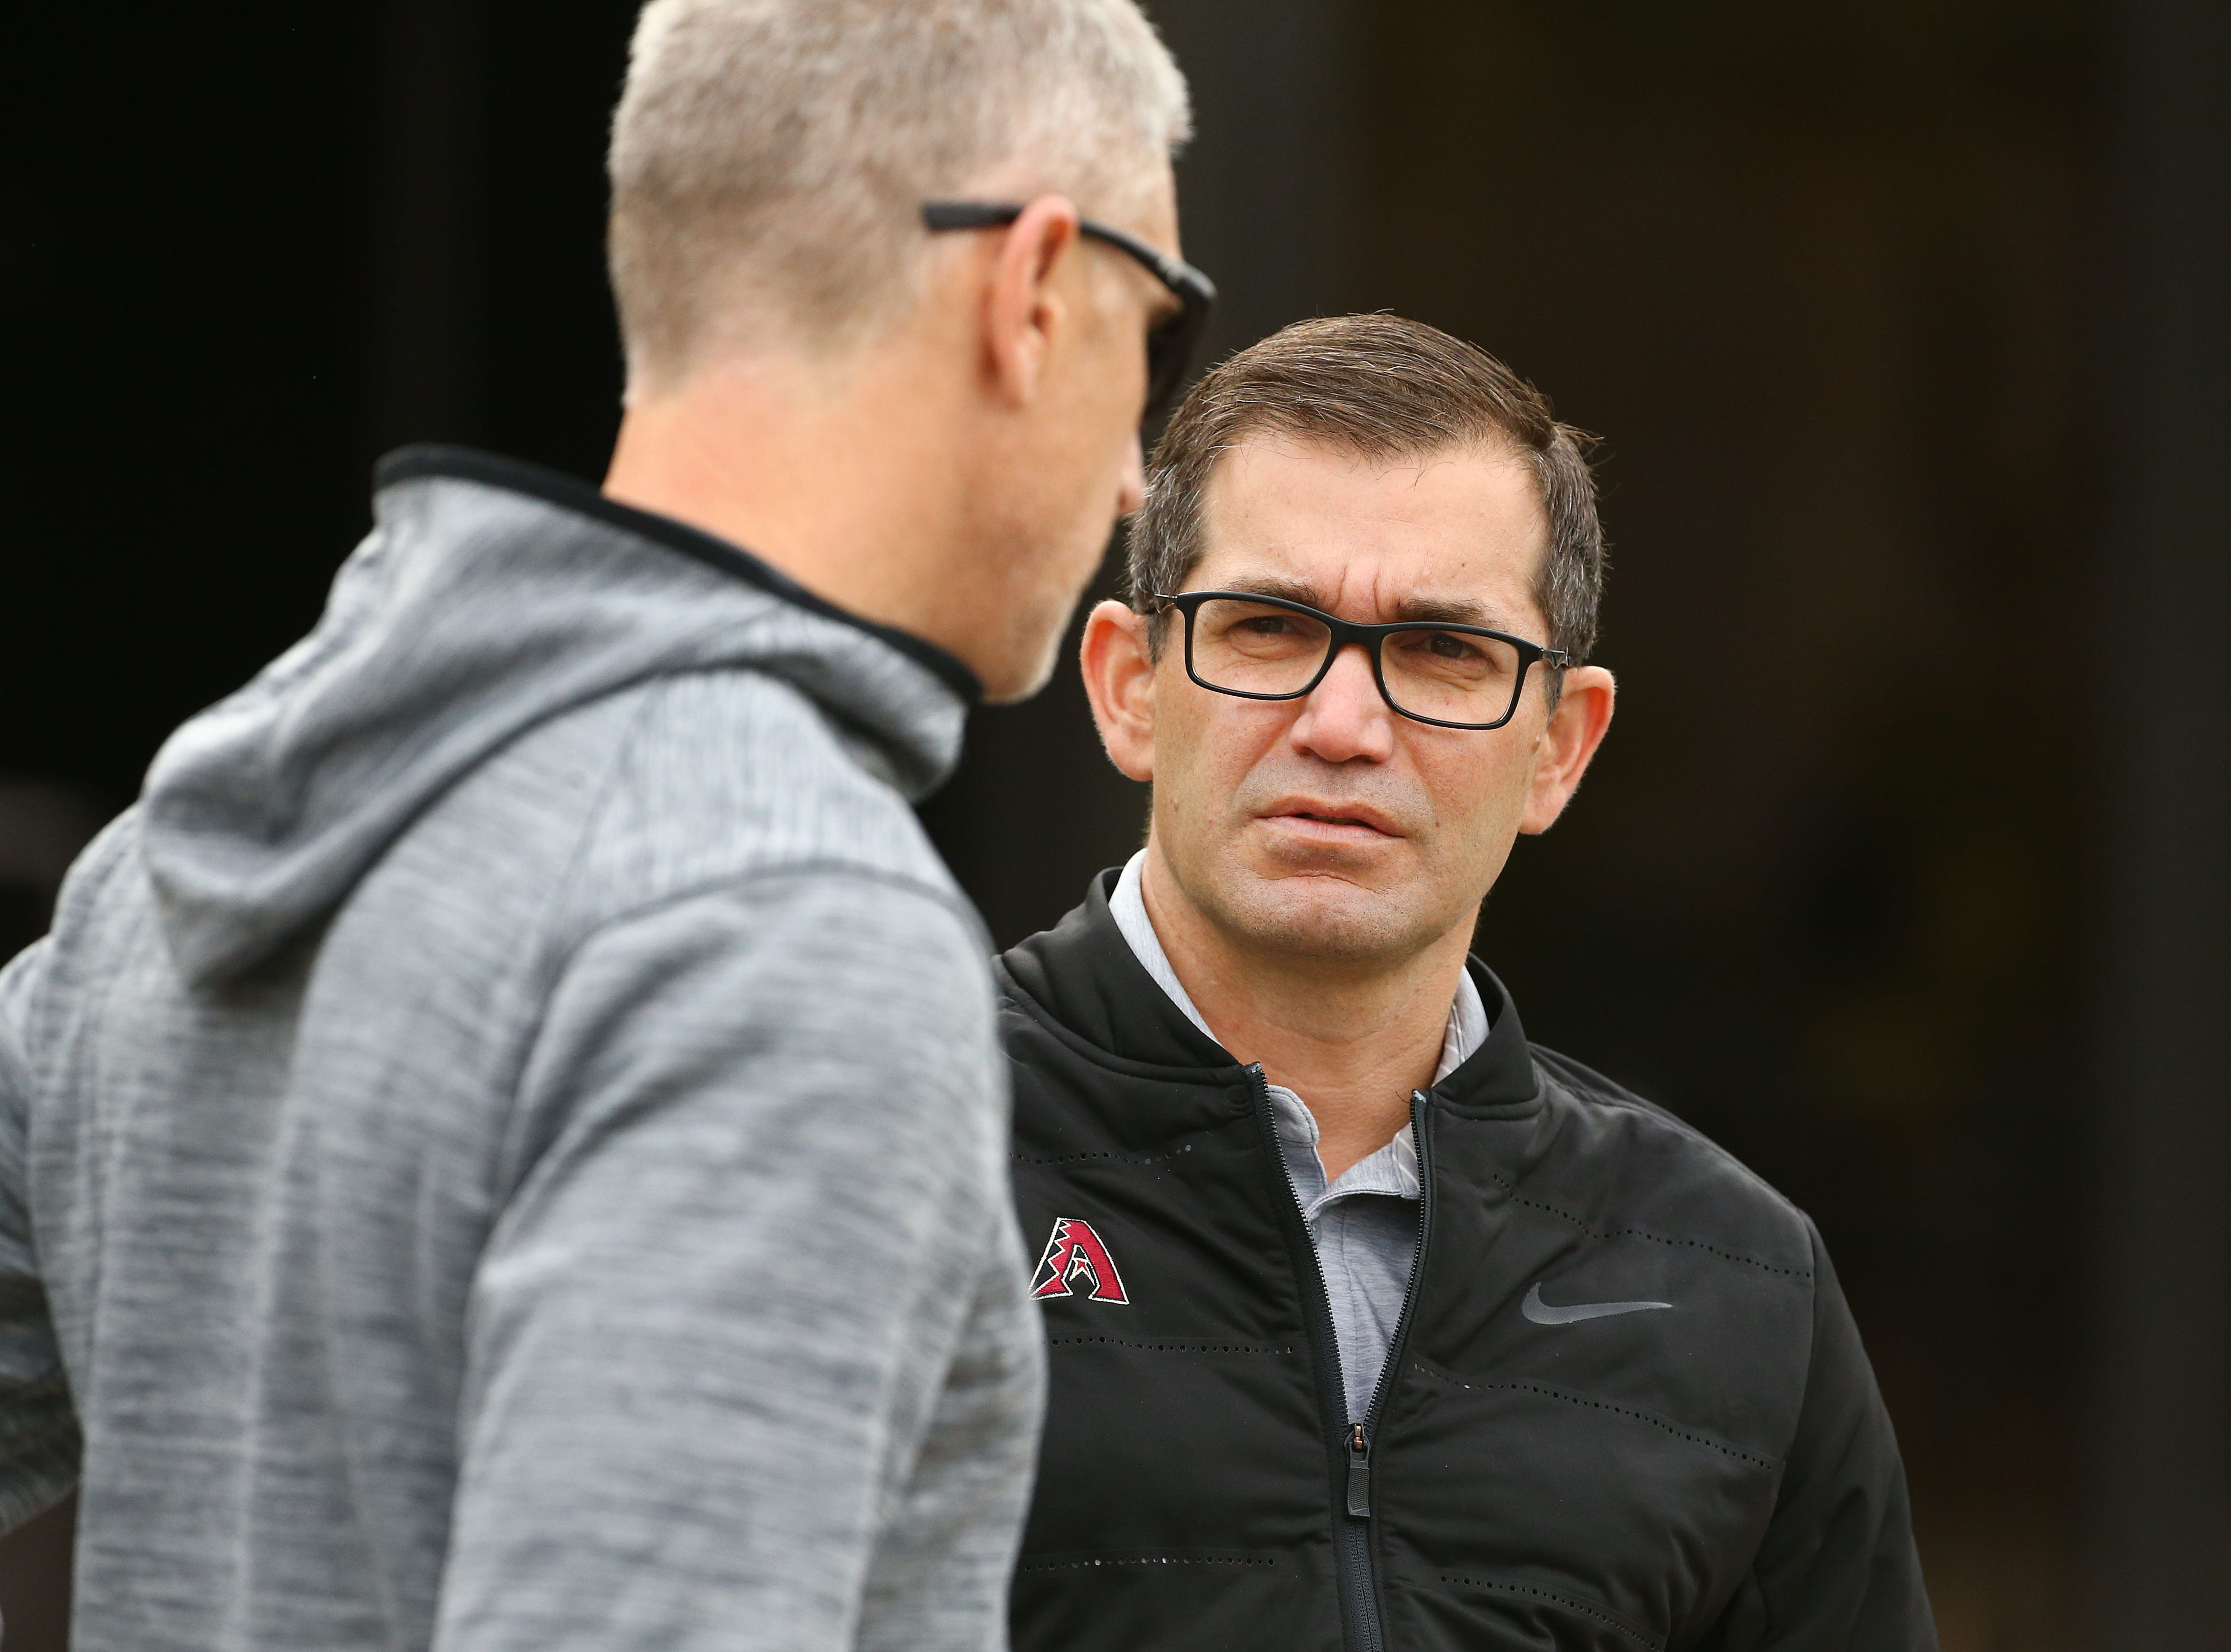 Amiel Sawdaye, (right) Senior VP & Assistant GM talks to Michael Bell, Director of Player Development for the Arizona Diamondbacks during the first day of spring training workouts on Feb. 13 at Salt River Fields in Scottsdale.